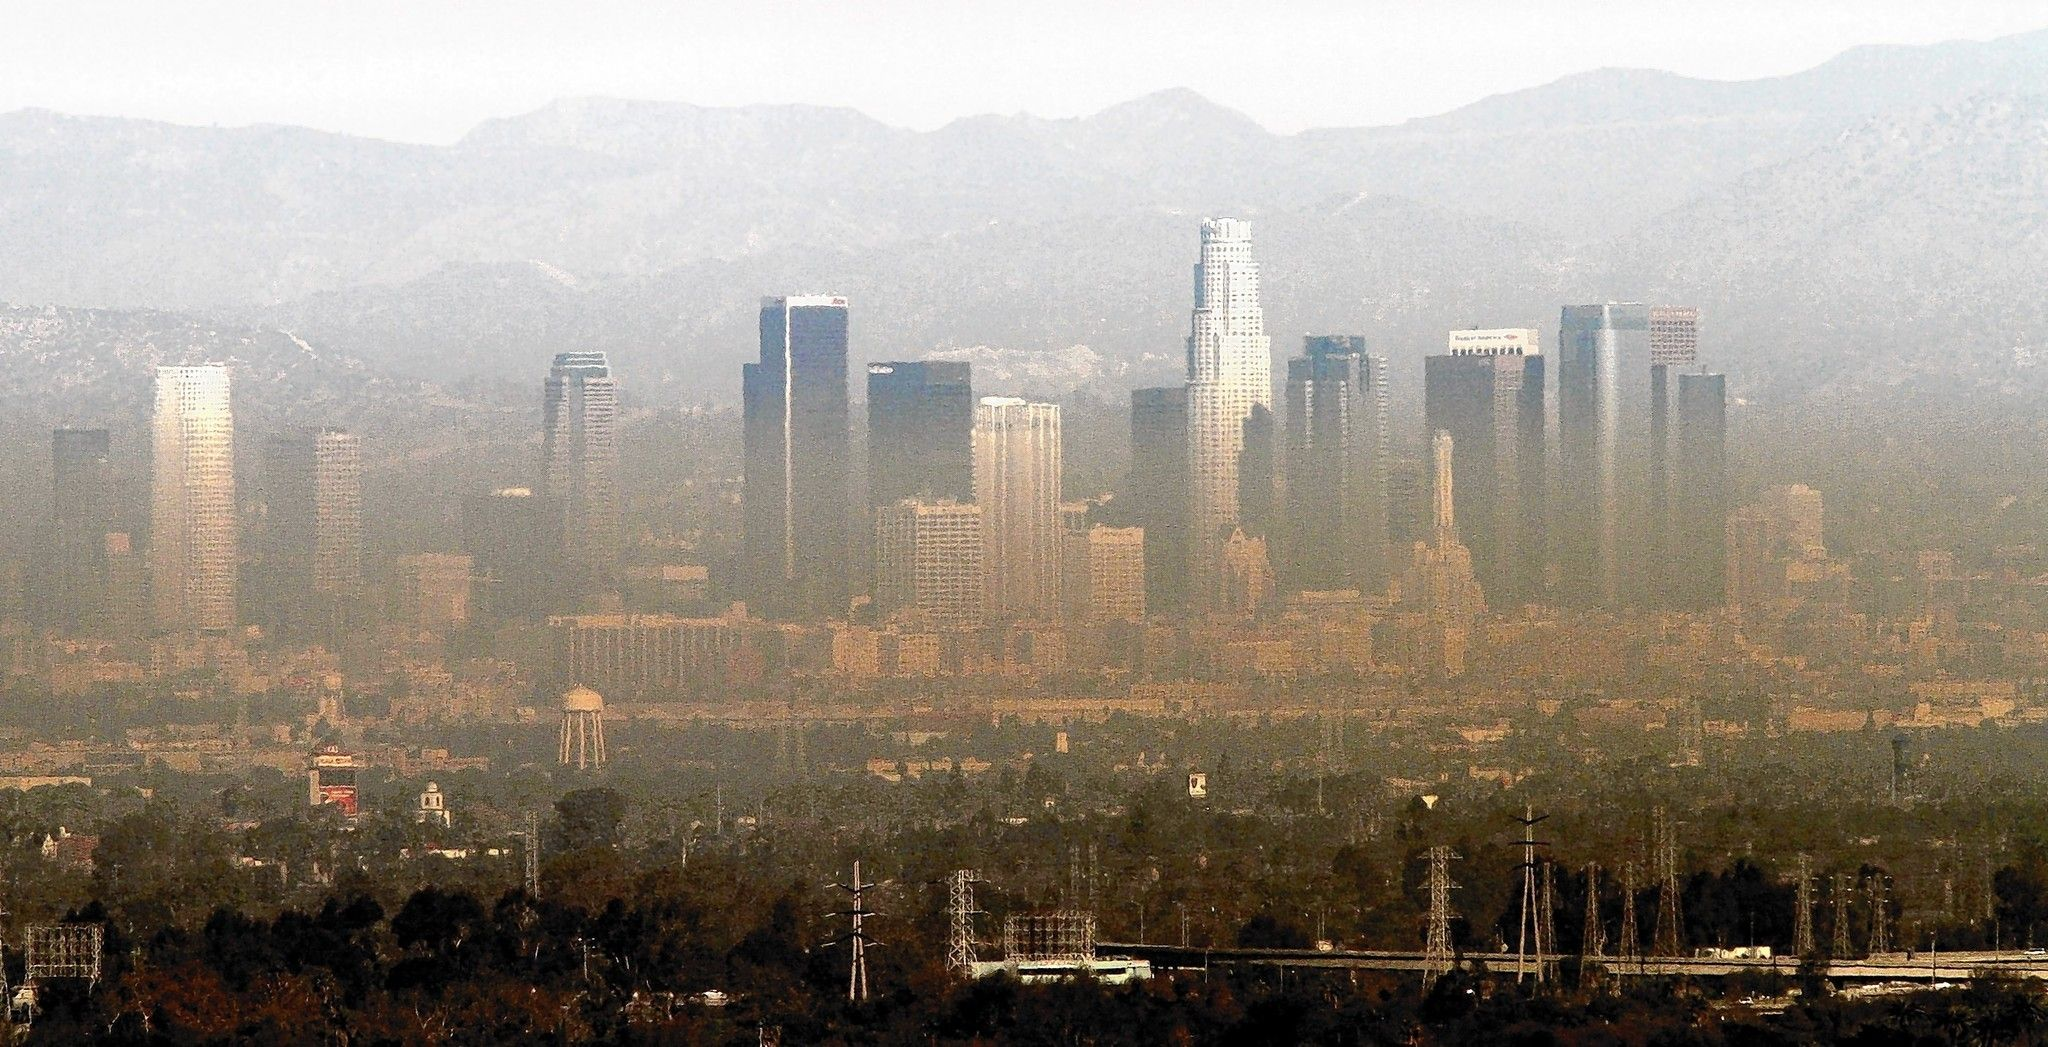 L A Central Valley Have Worst Air Quality American Lung Assn Says Pollution Central Valley Air Pollution